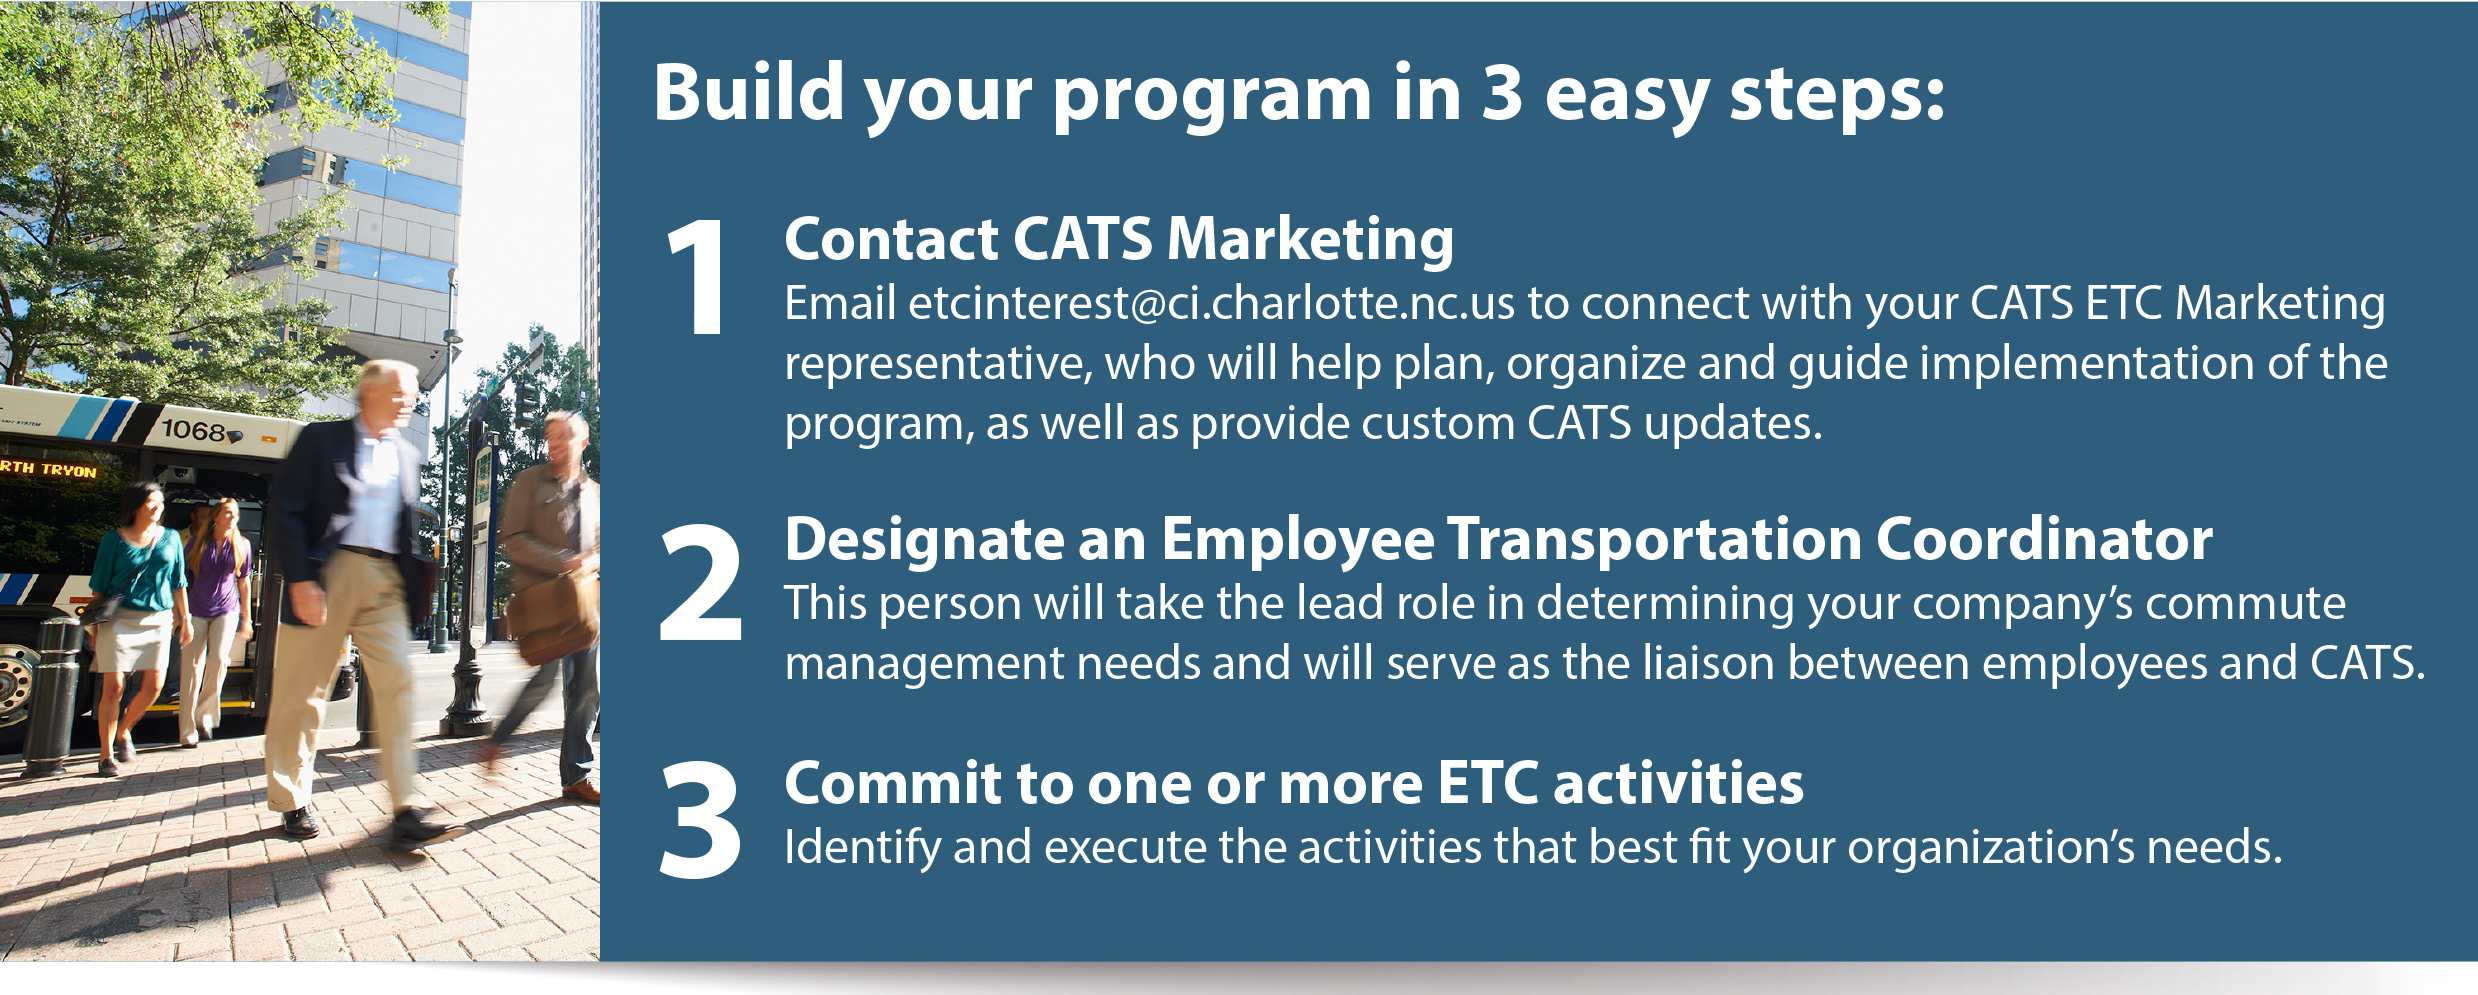 Image of Employee Transportation Coordinator Program starting steps